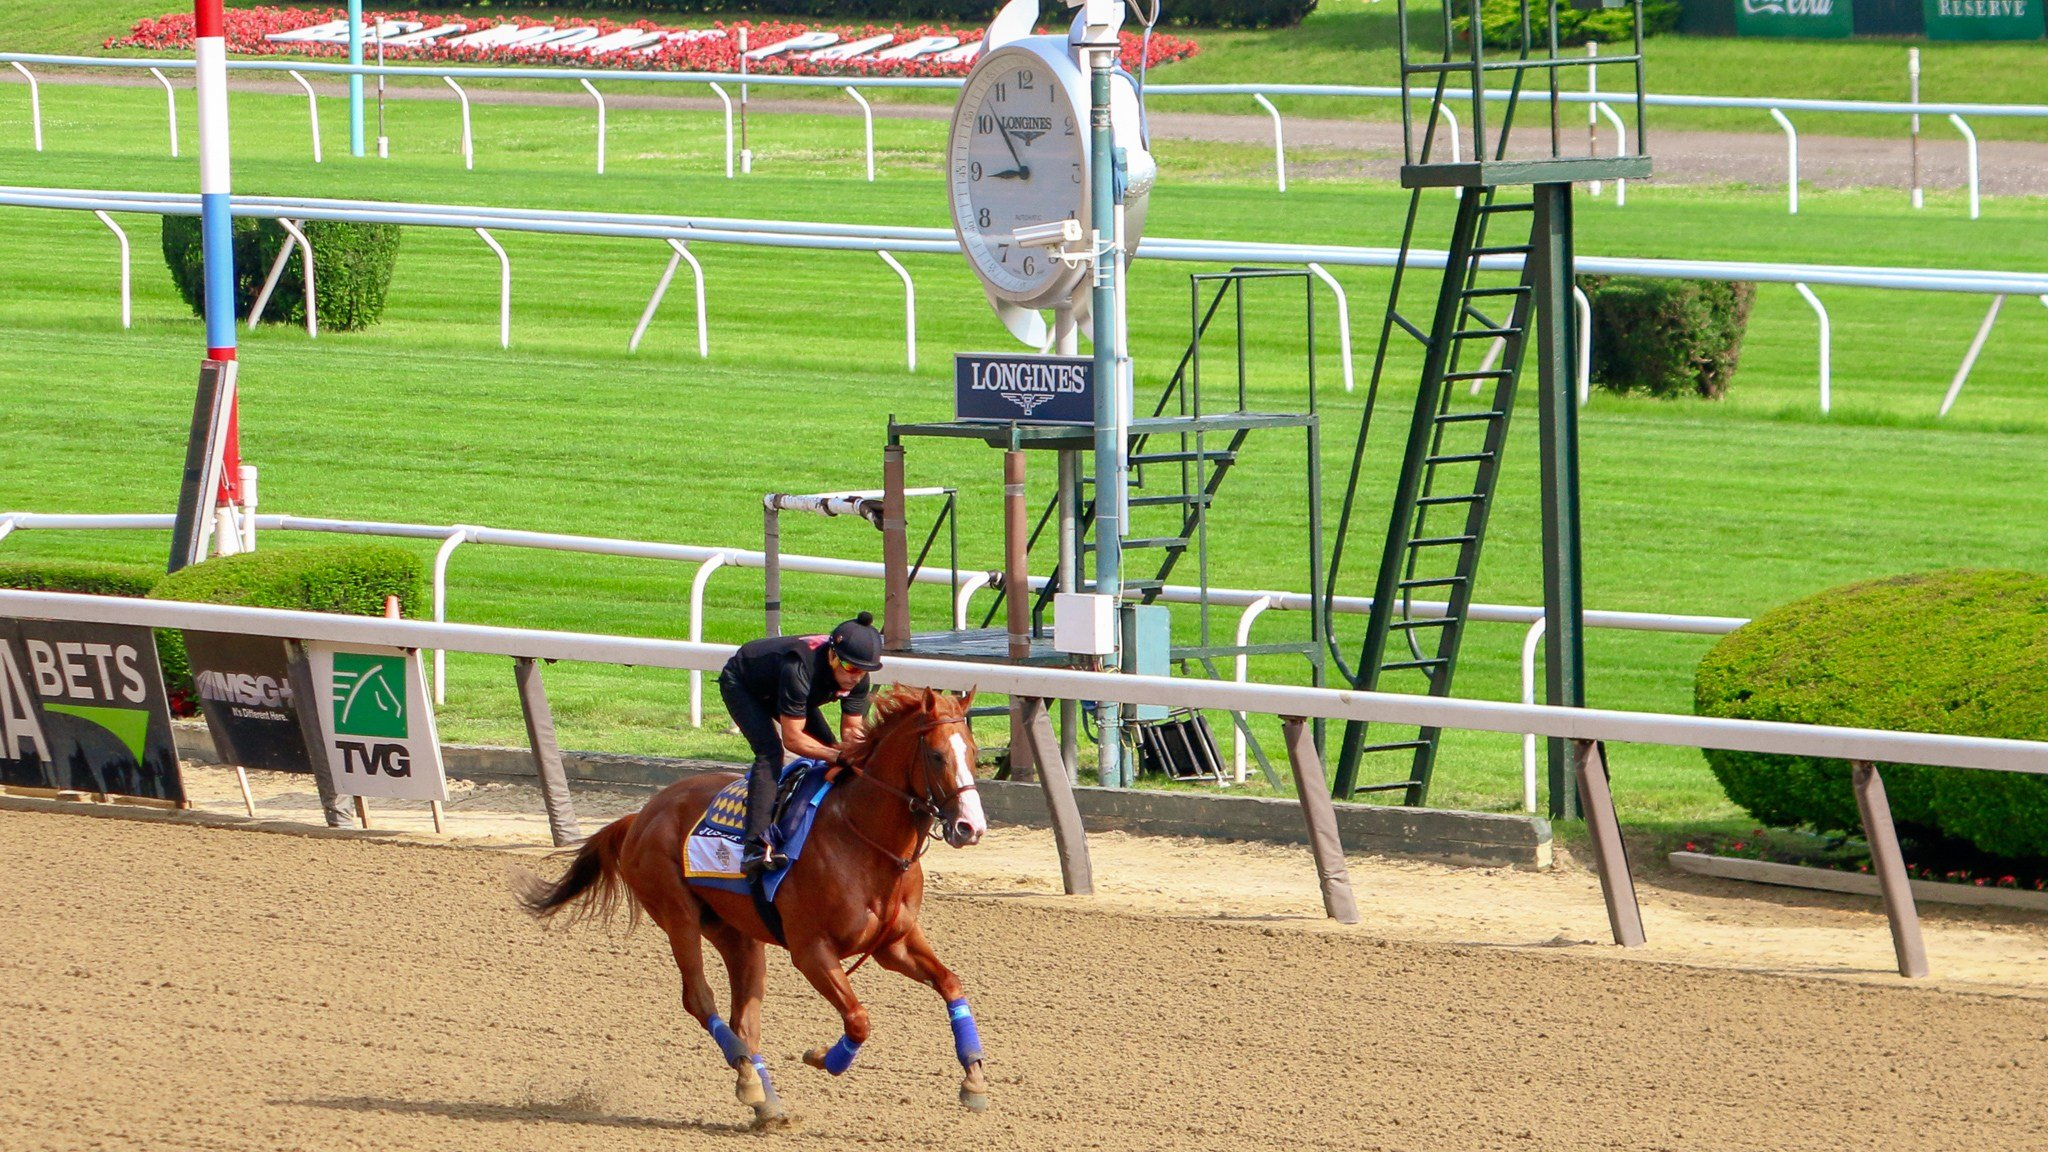 Justify galloped past the big clock and the finish line during his final pre-Belmont gallop at Belmont Park. (WDRB photo by Eric Crawford)